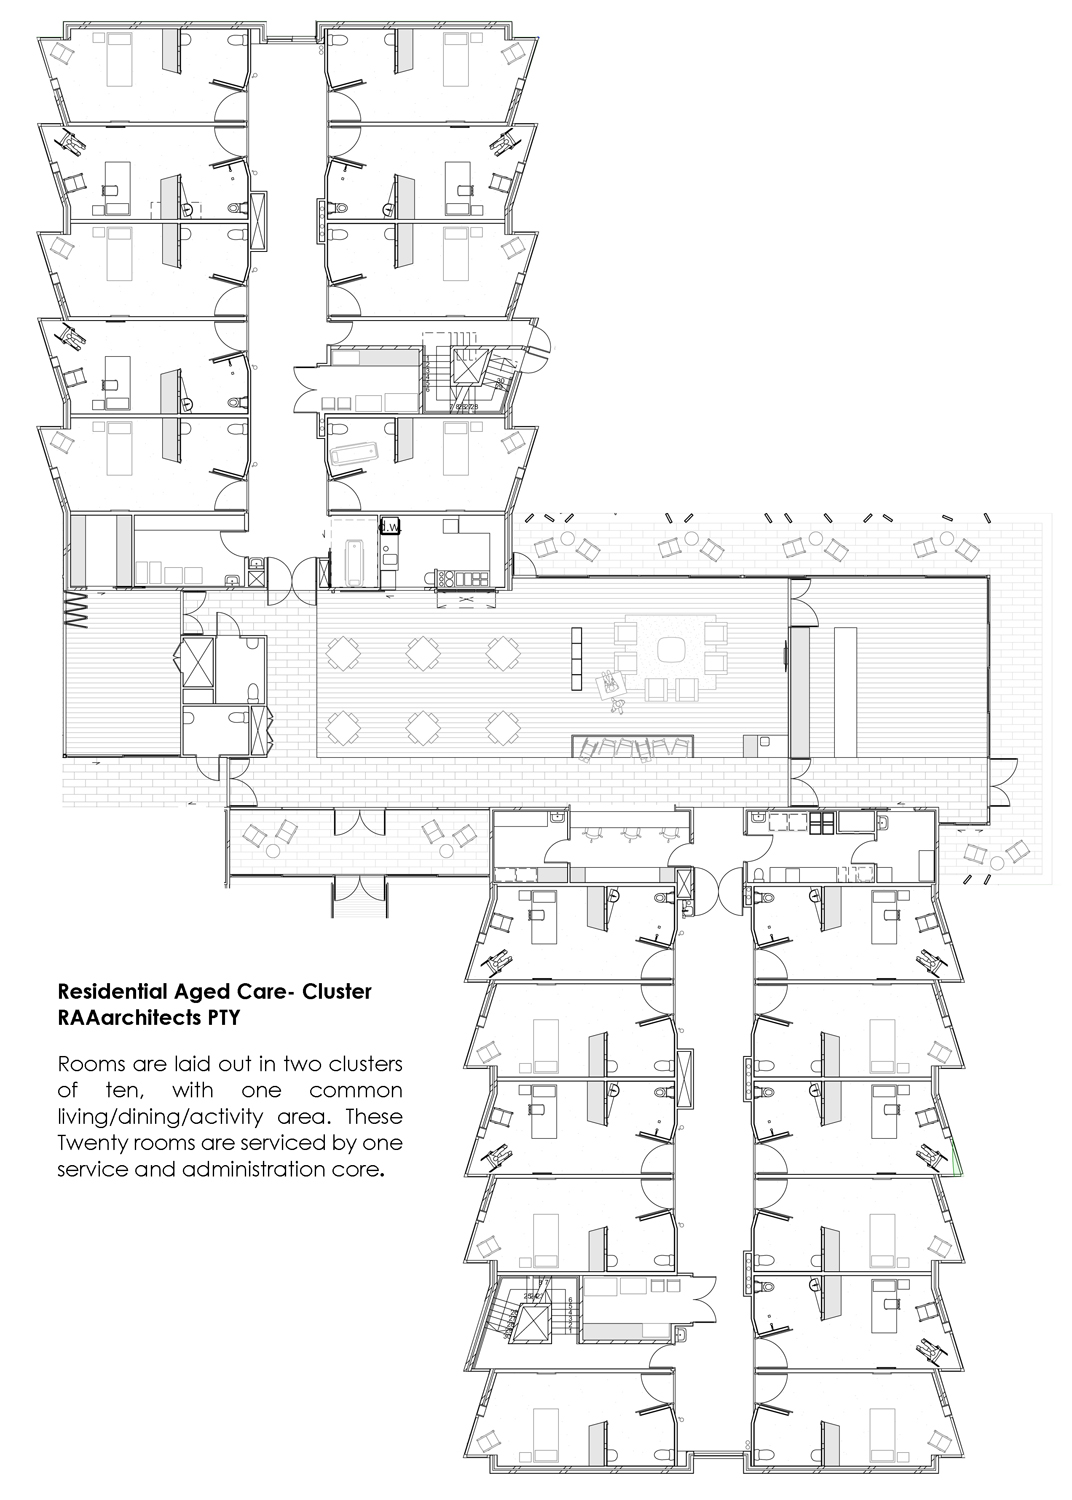 Residential Aged Care - Cluster - ground floor plan RAAarchitects}